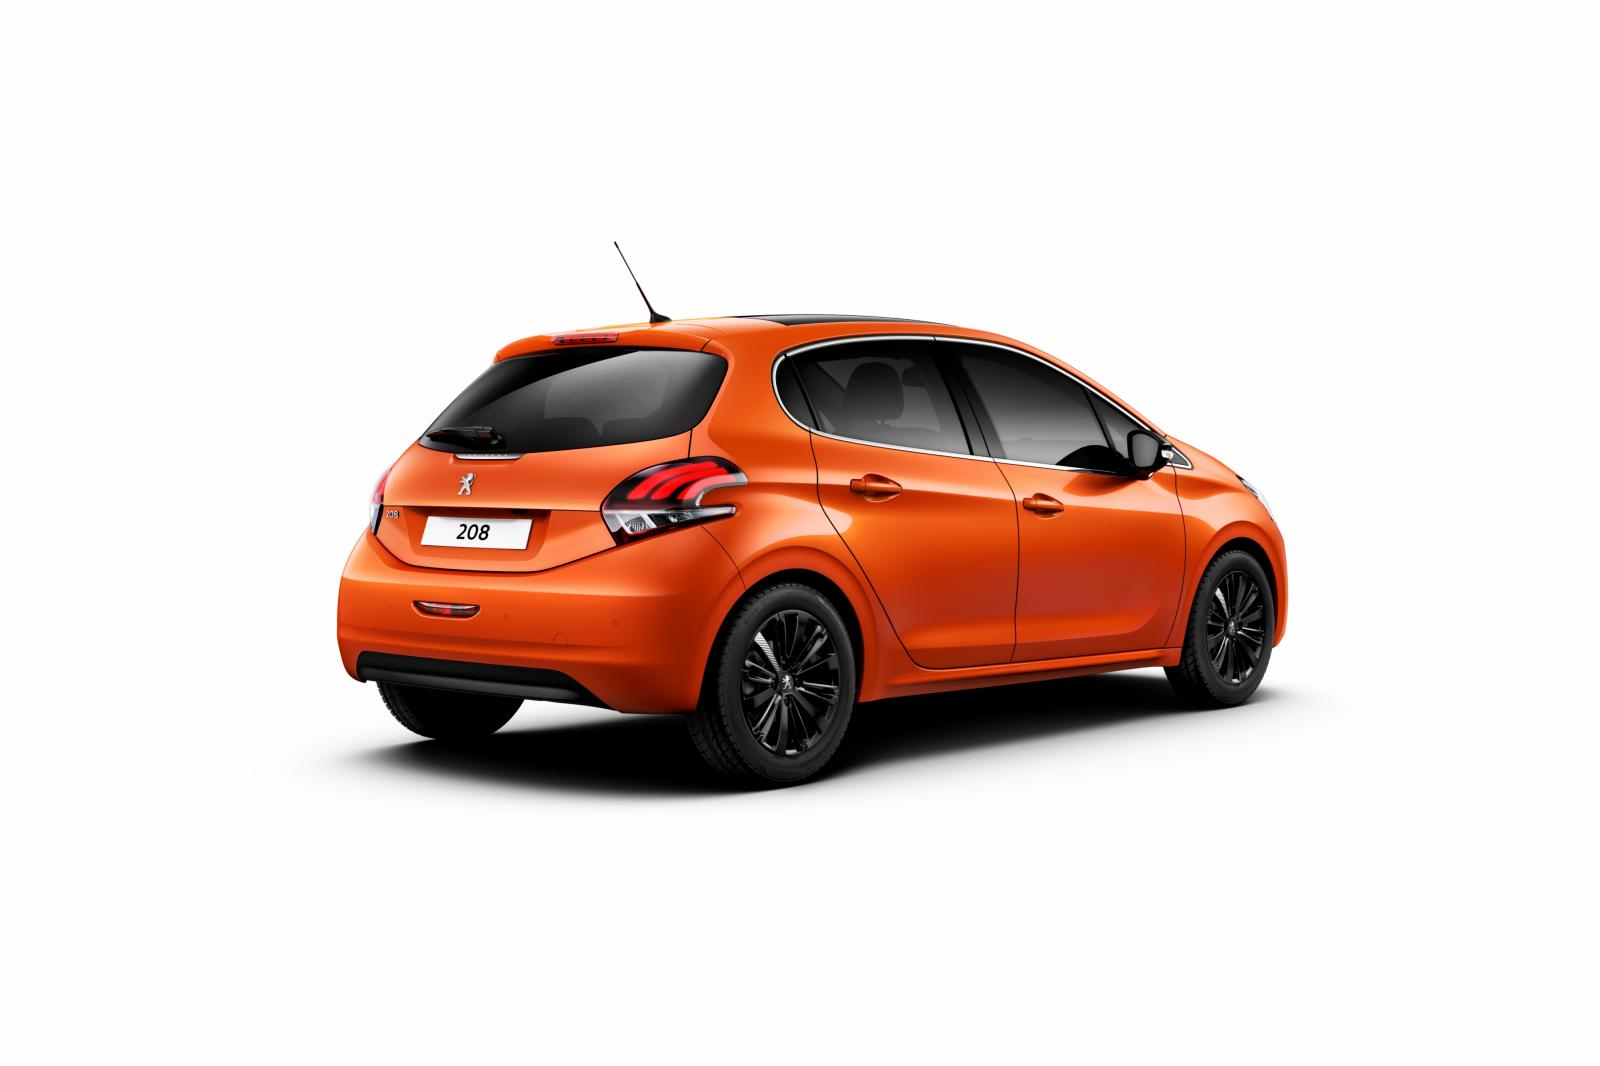 2015 peugeot 208 facelift revealed complete with 1 2 turbo and orange paint autoevolution. Black Bedroom Furniture Sets. Home Design Ideas